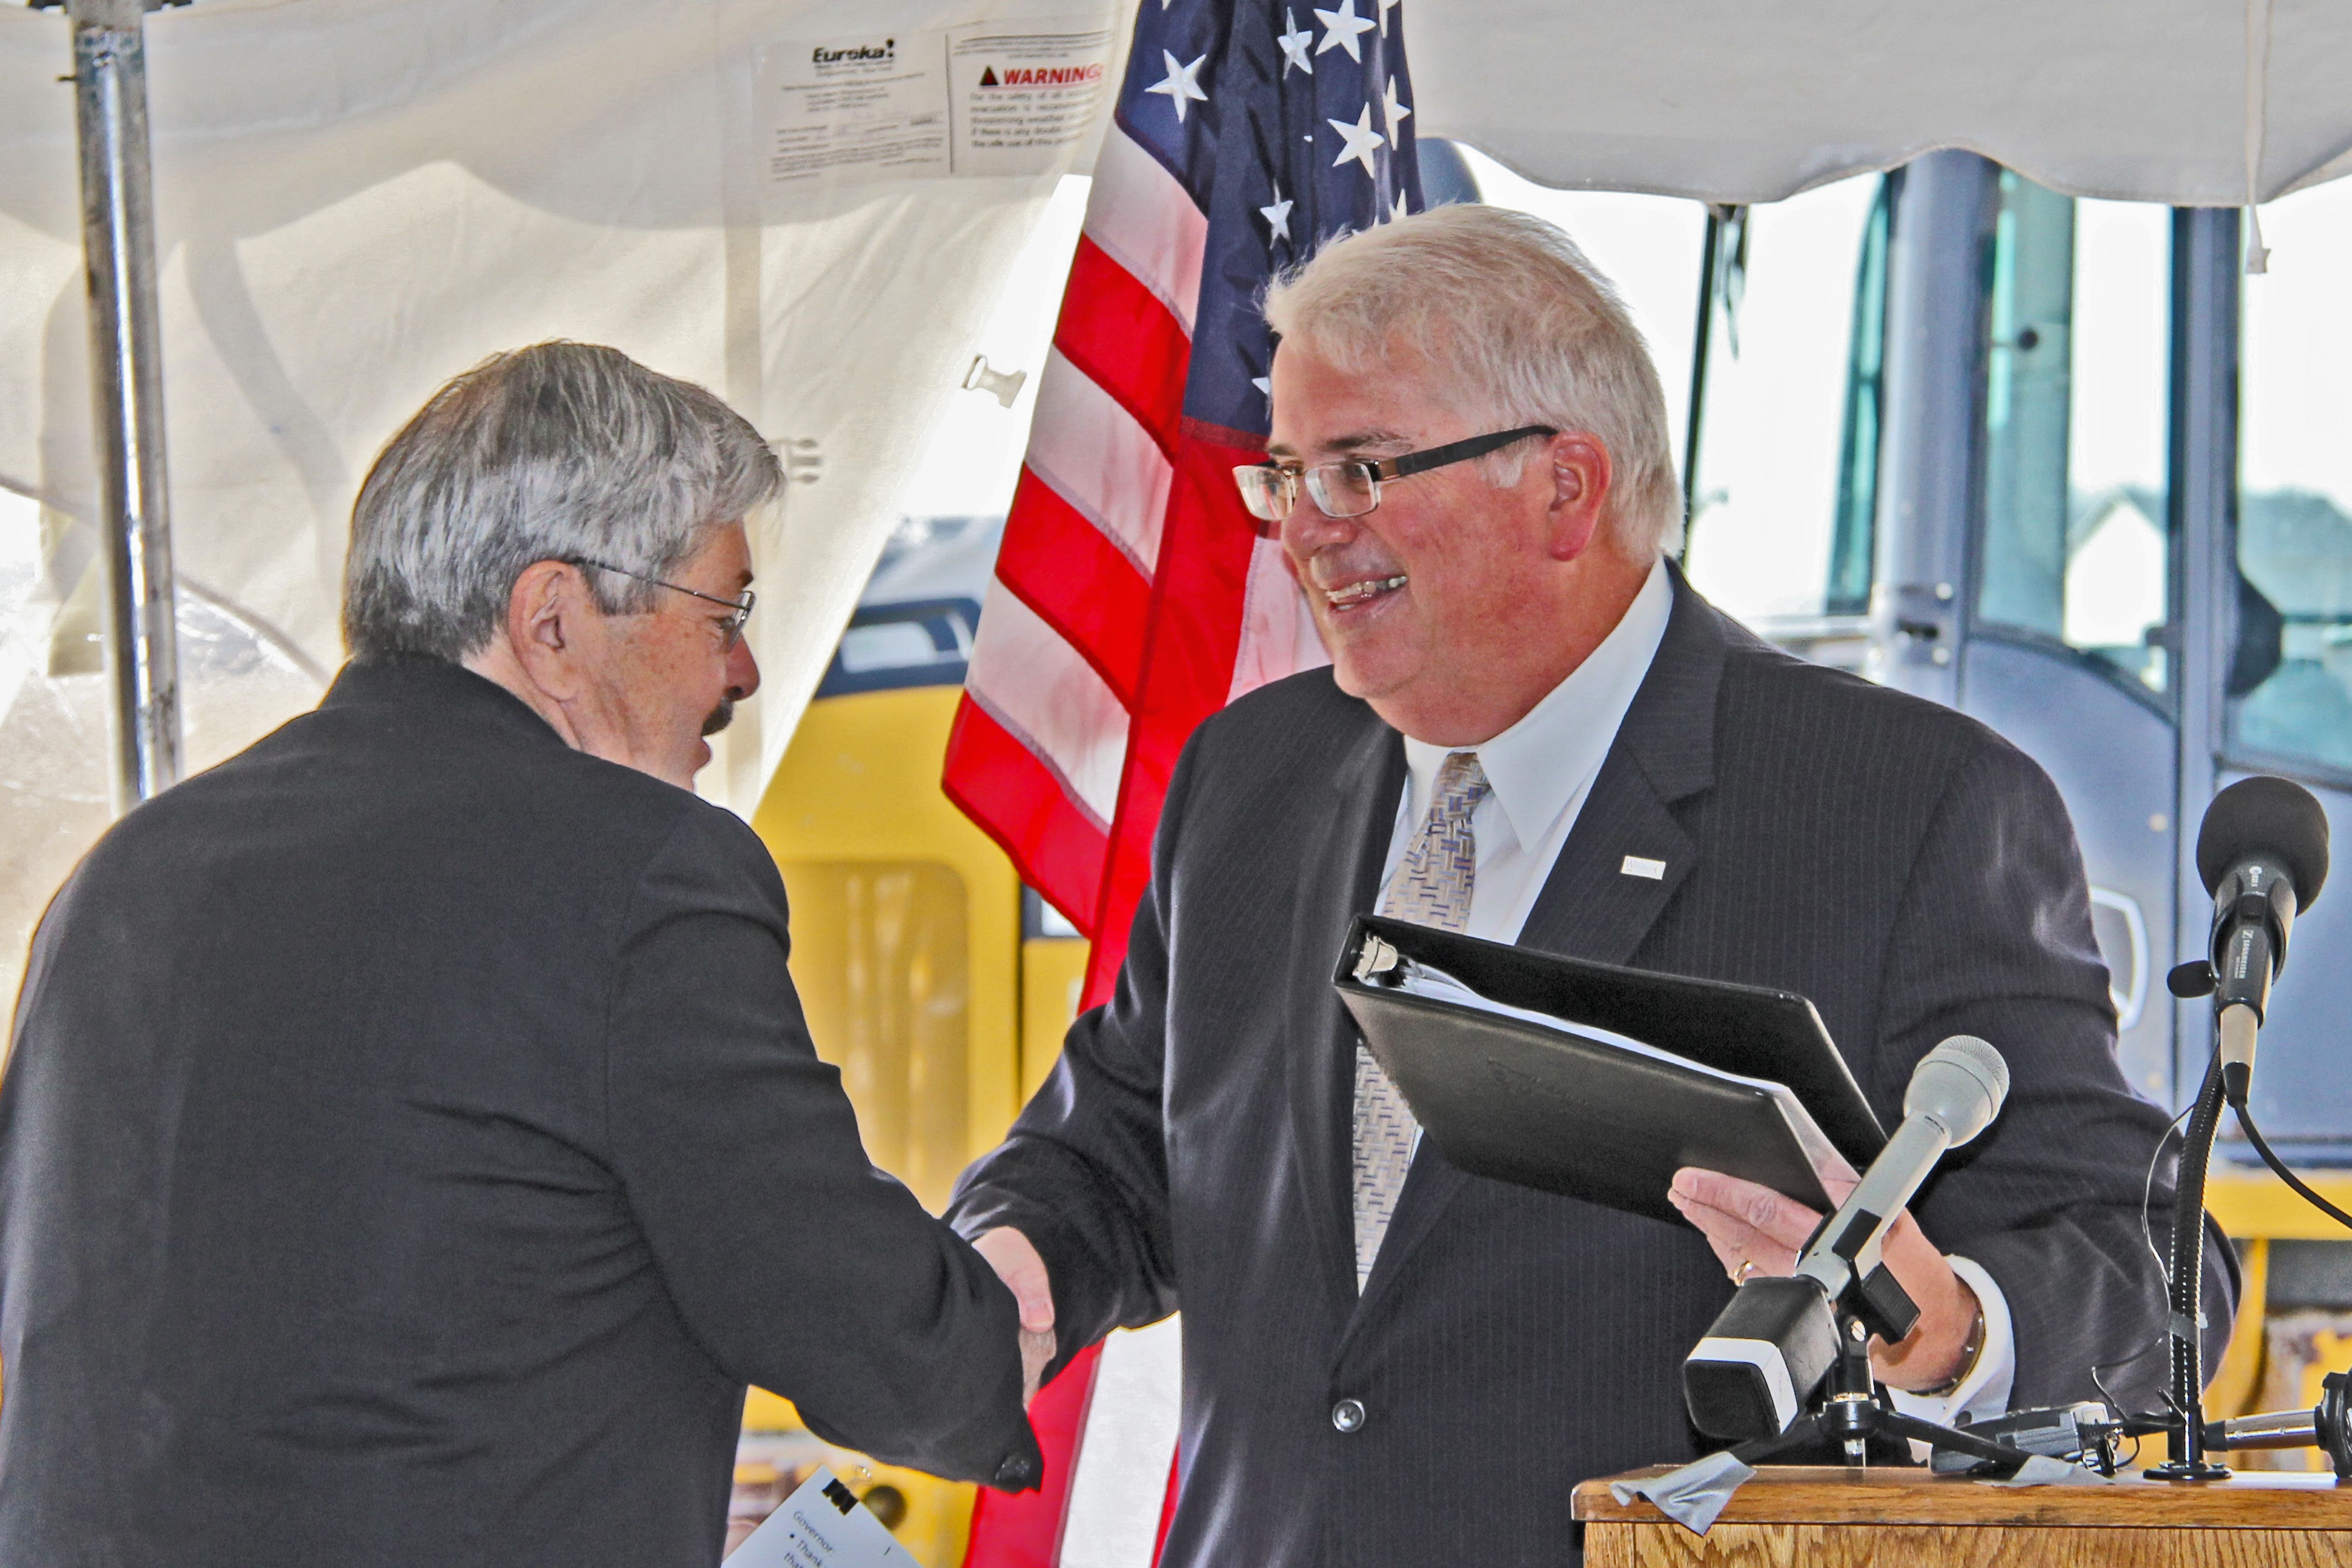 Mayor Peard welcomes Gov. Branstad